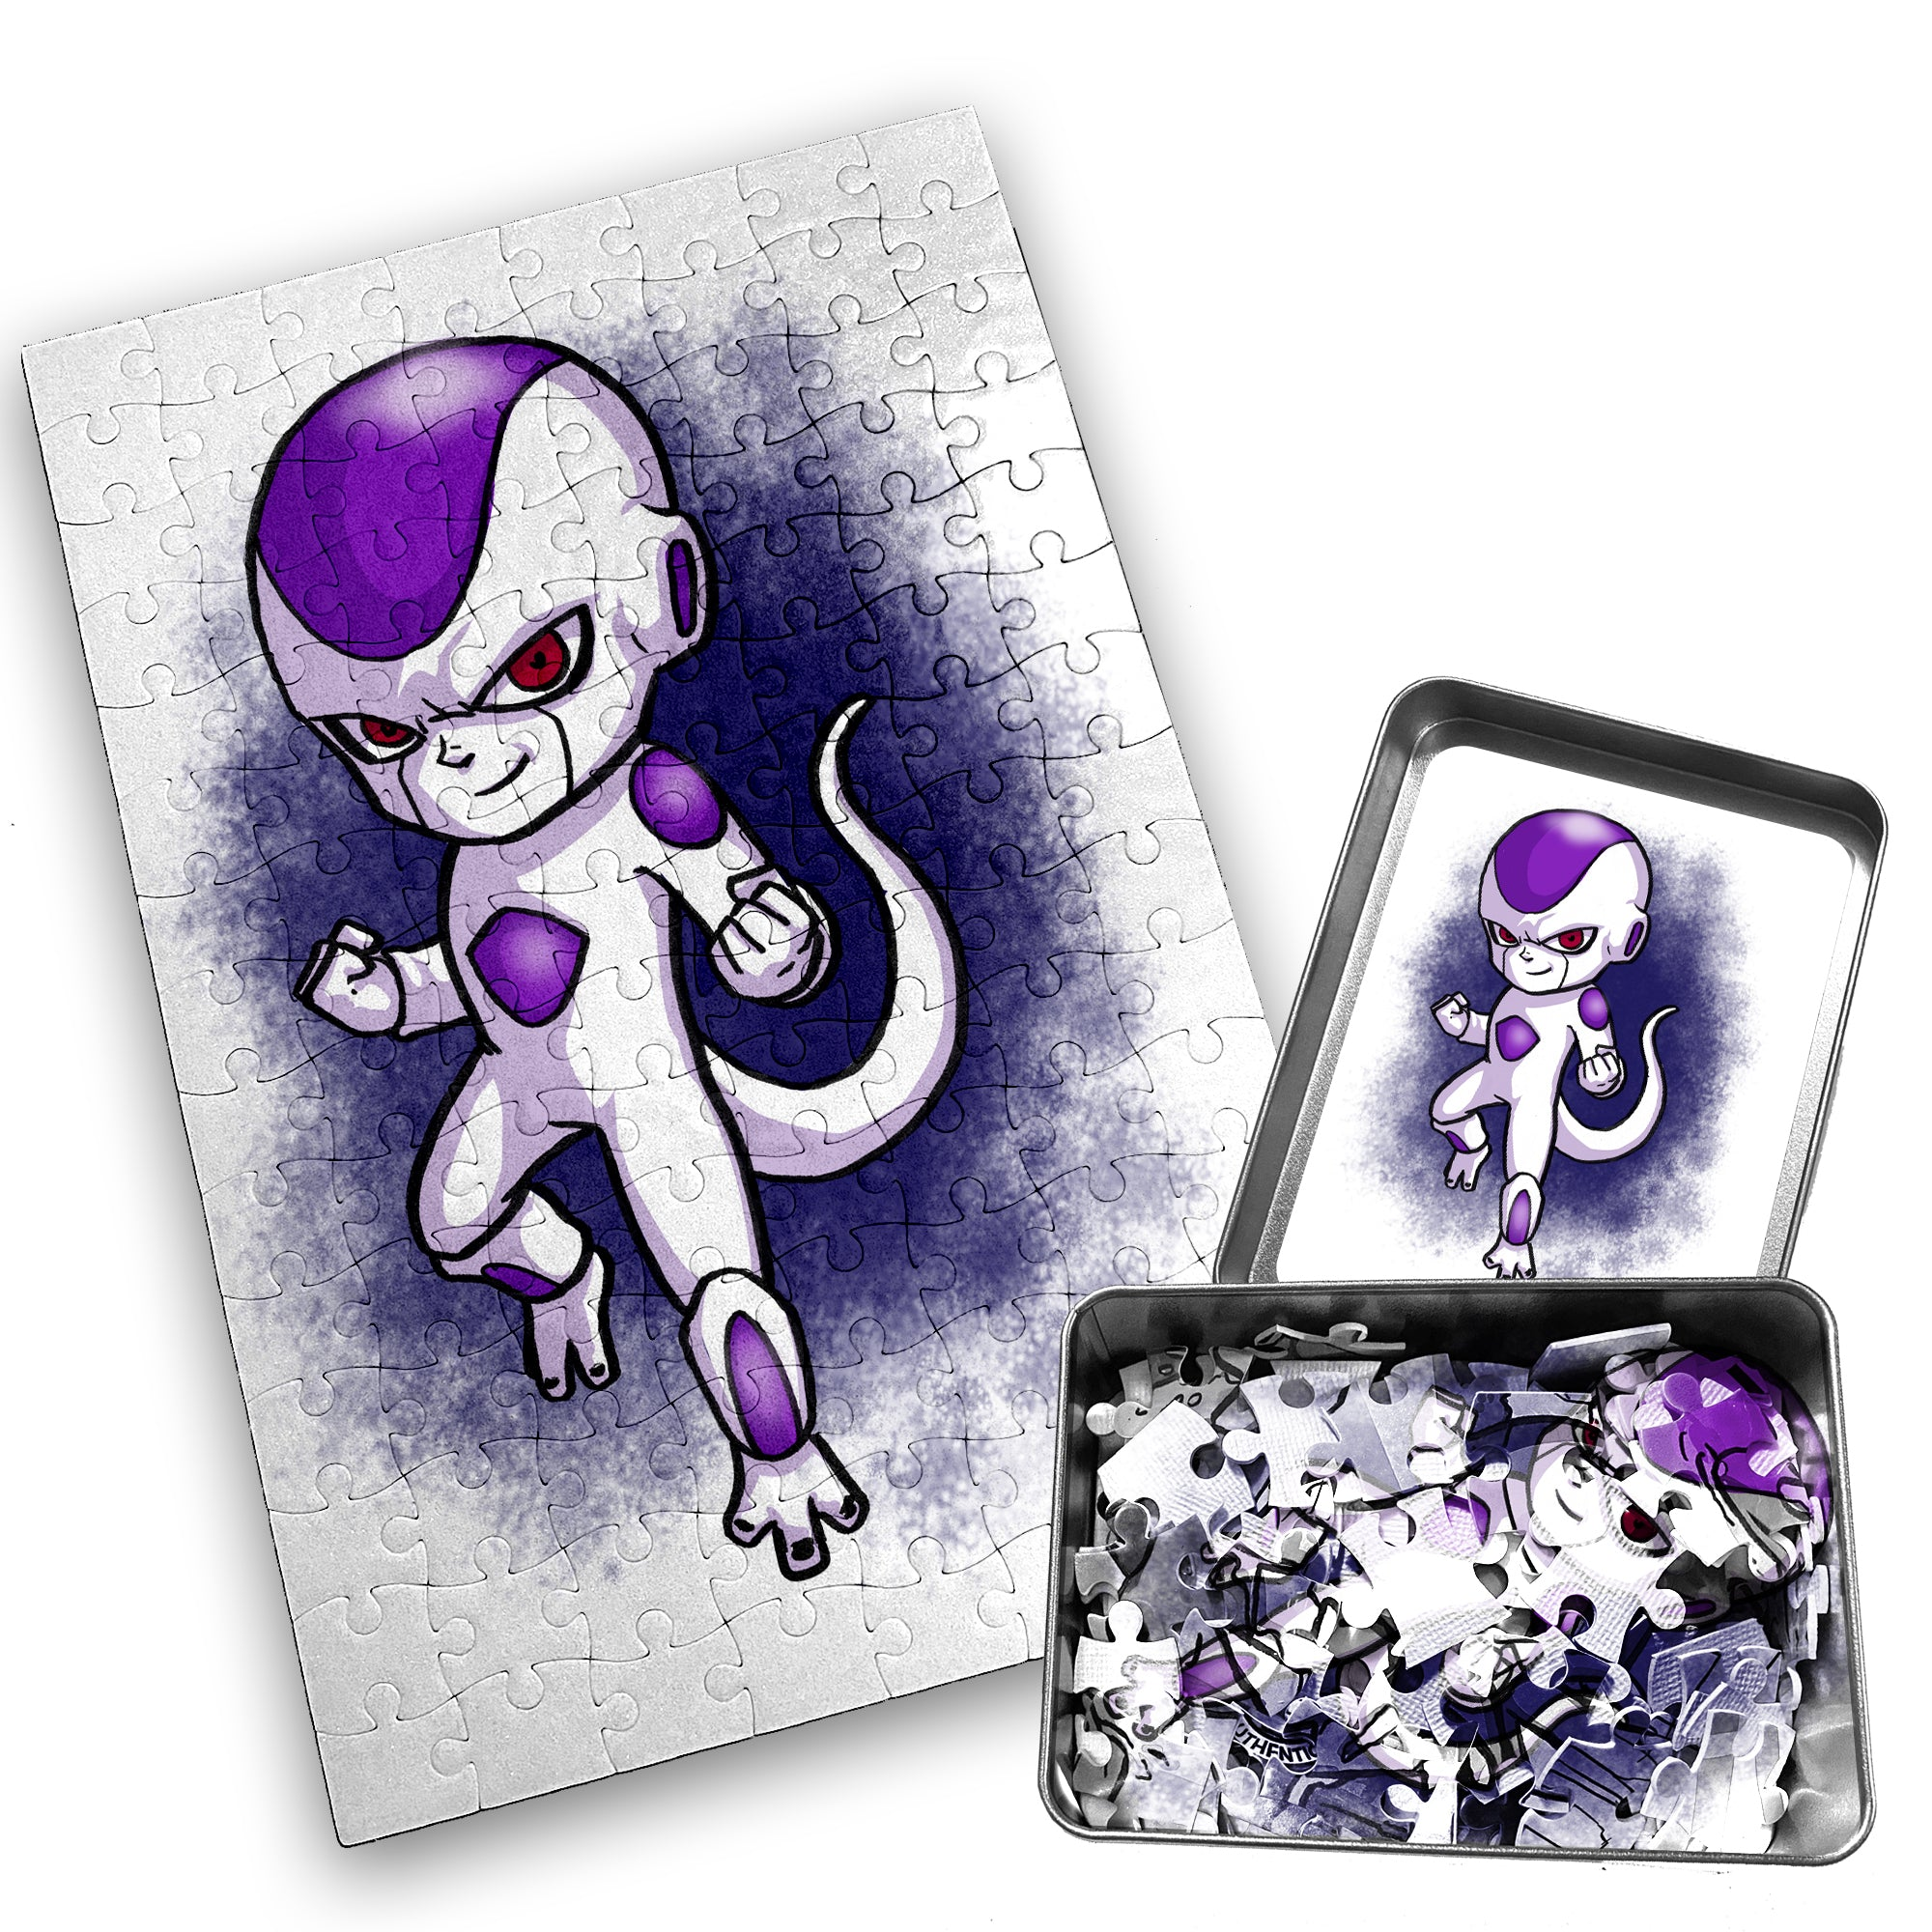 Frieza - Character - 120 Piece Jigsaw Puzzle